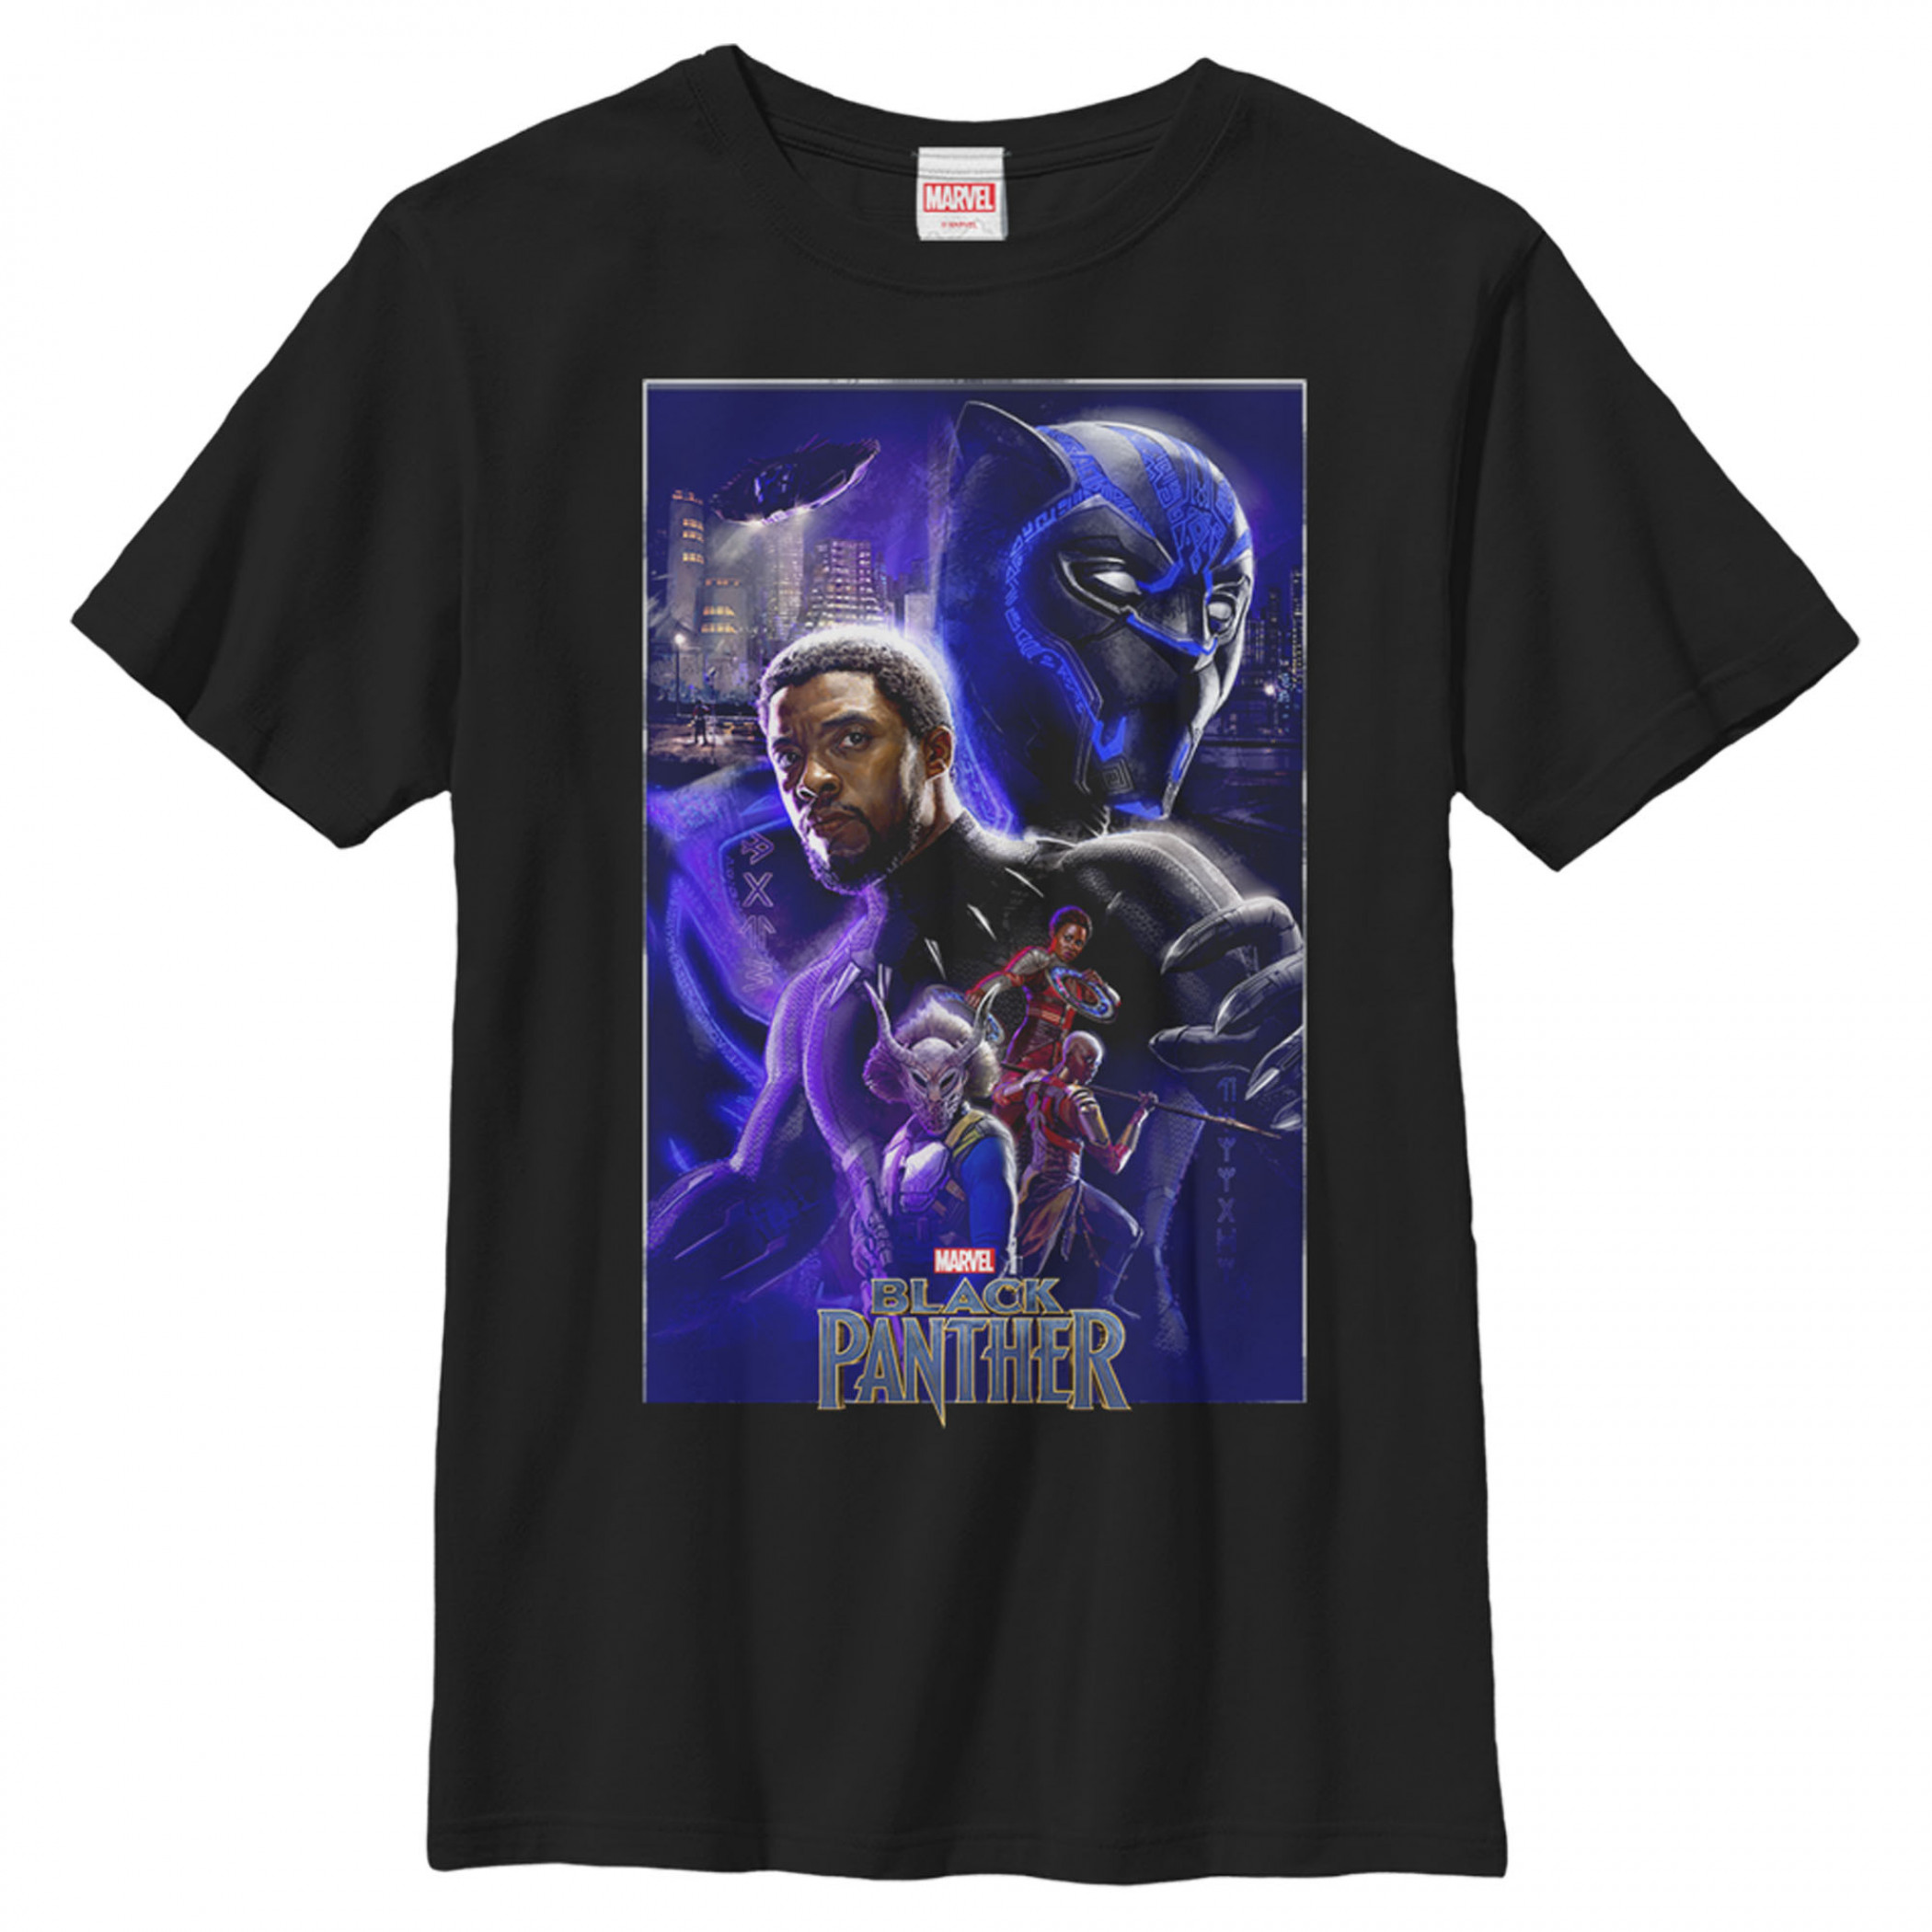 Black Panther Marvel Movie Poster Boy's T-Shirt